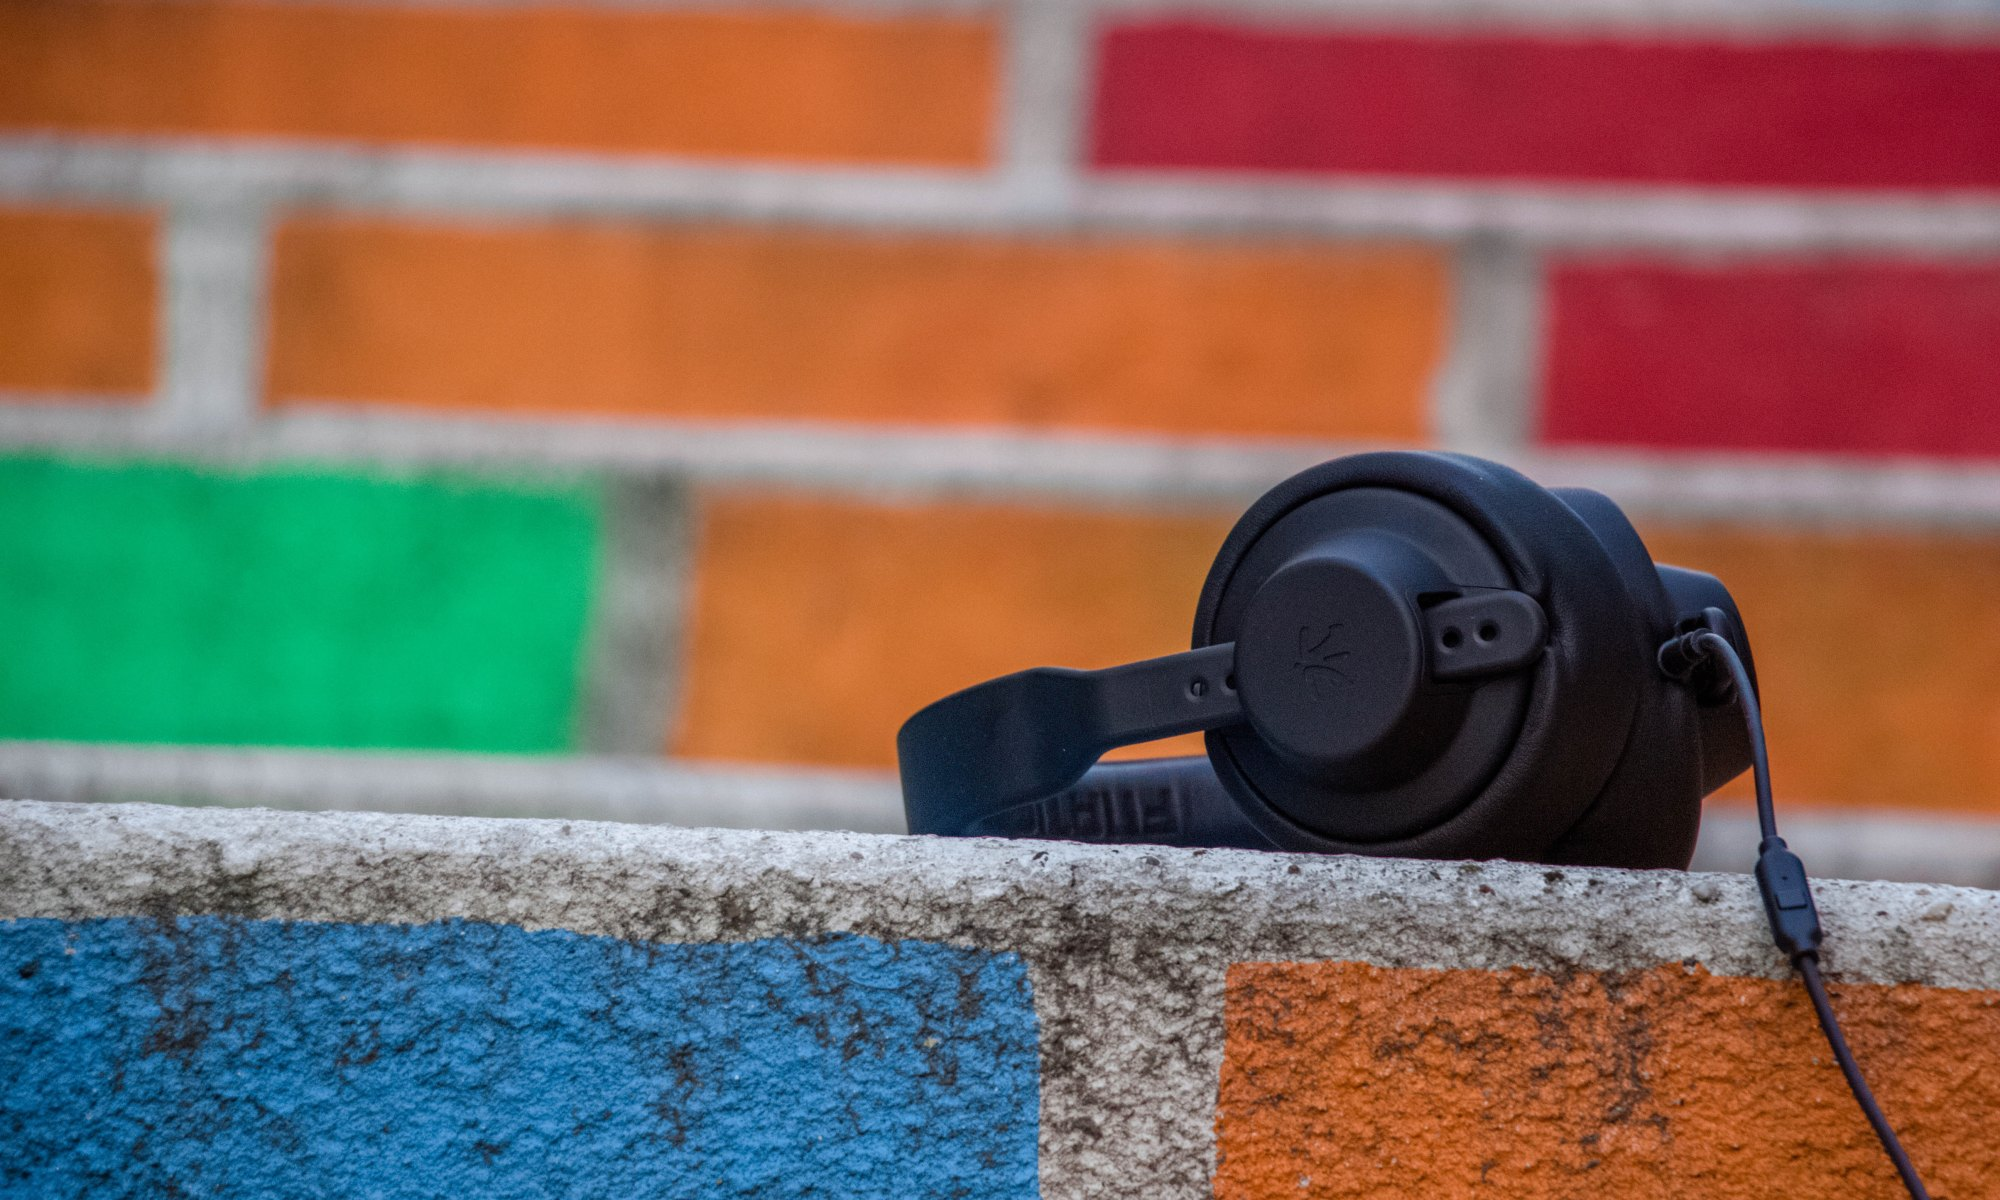 The healing effects of music from a black headphone around a colorful bricked wall